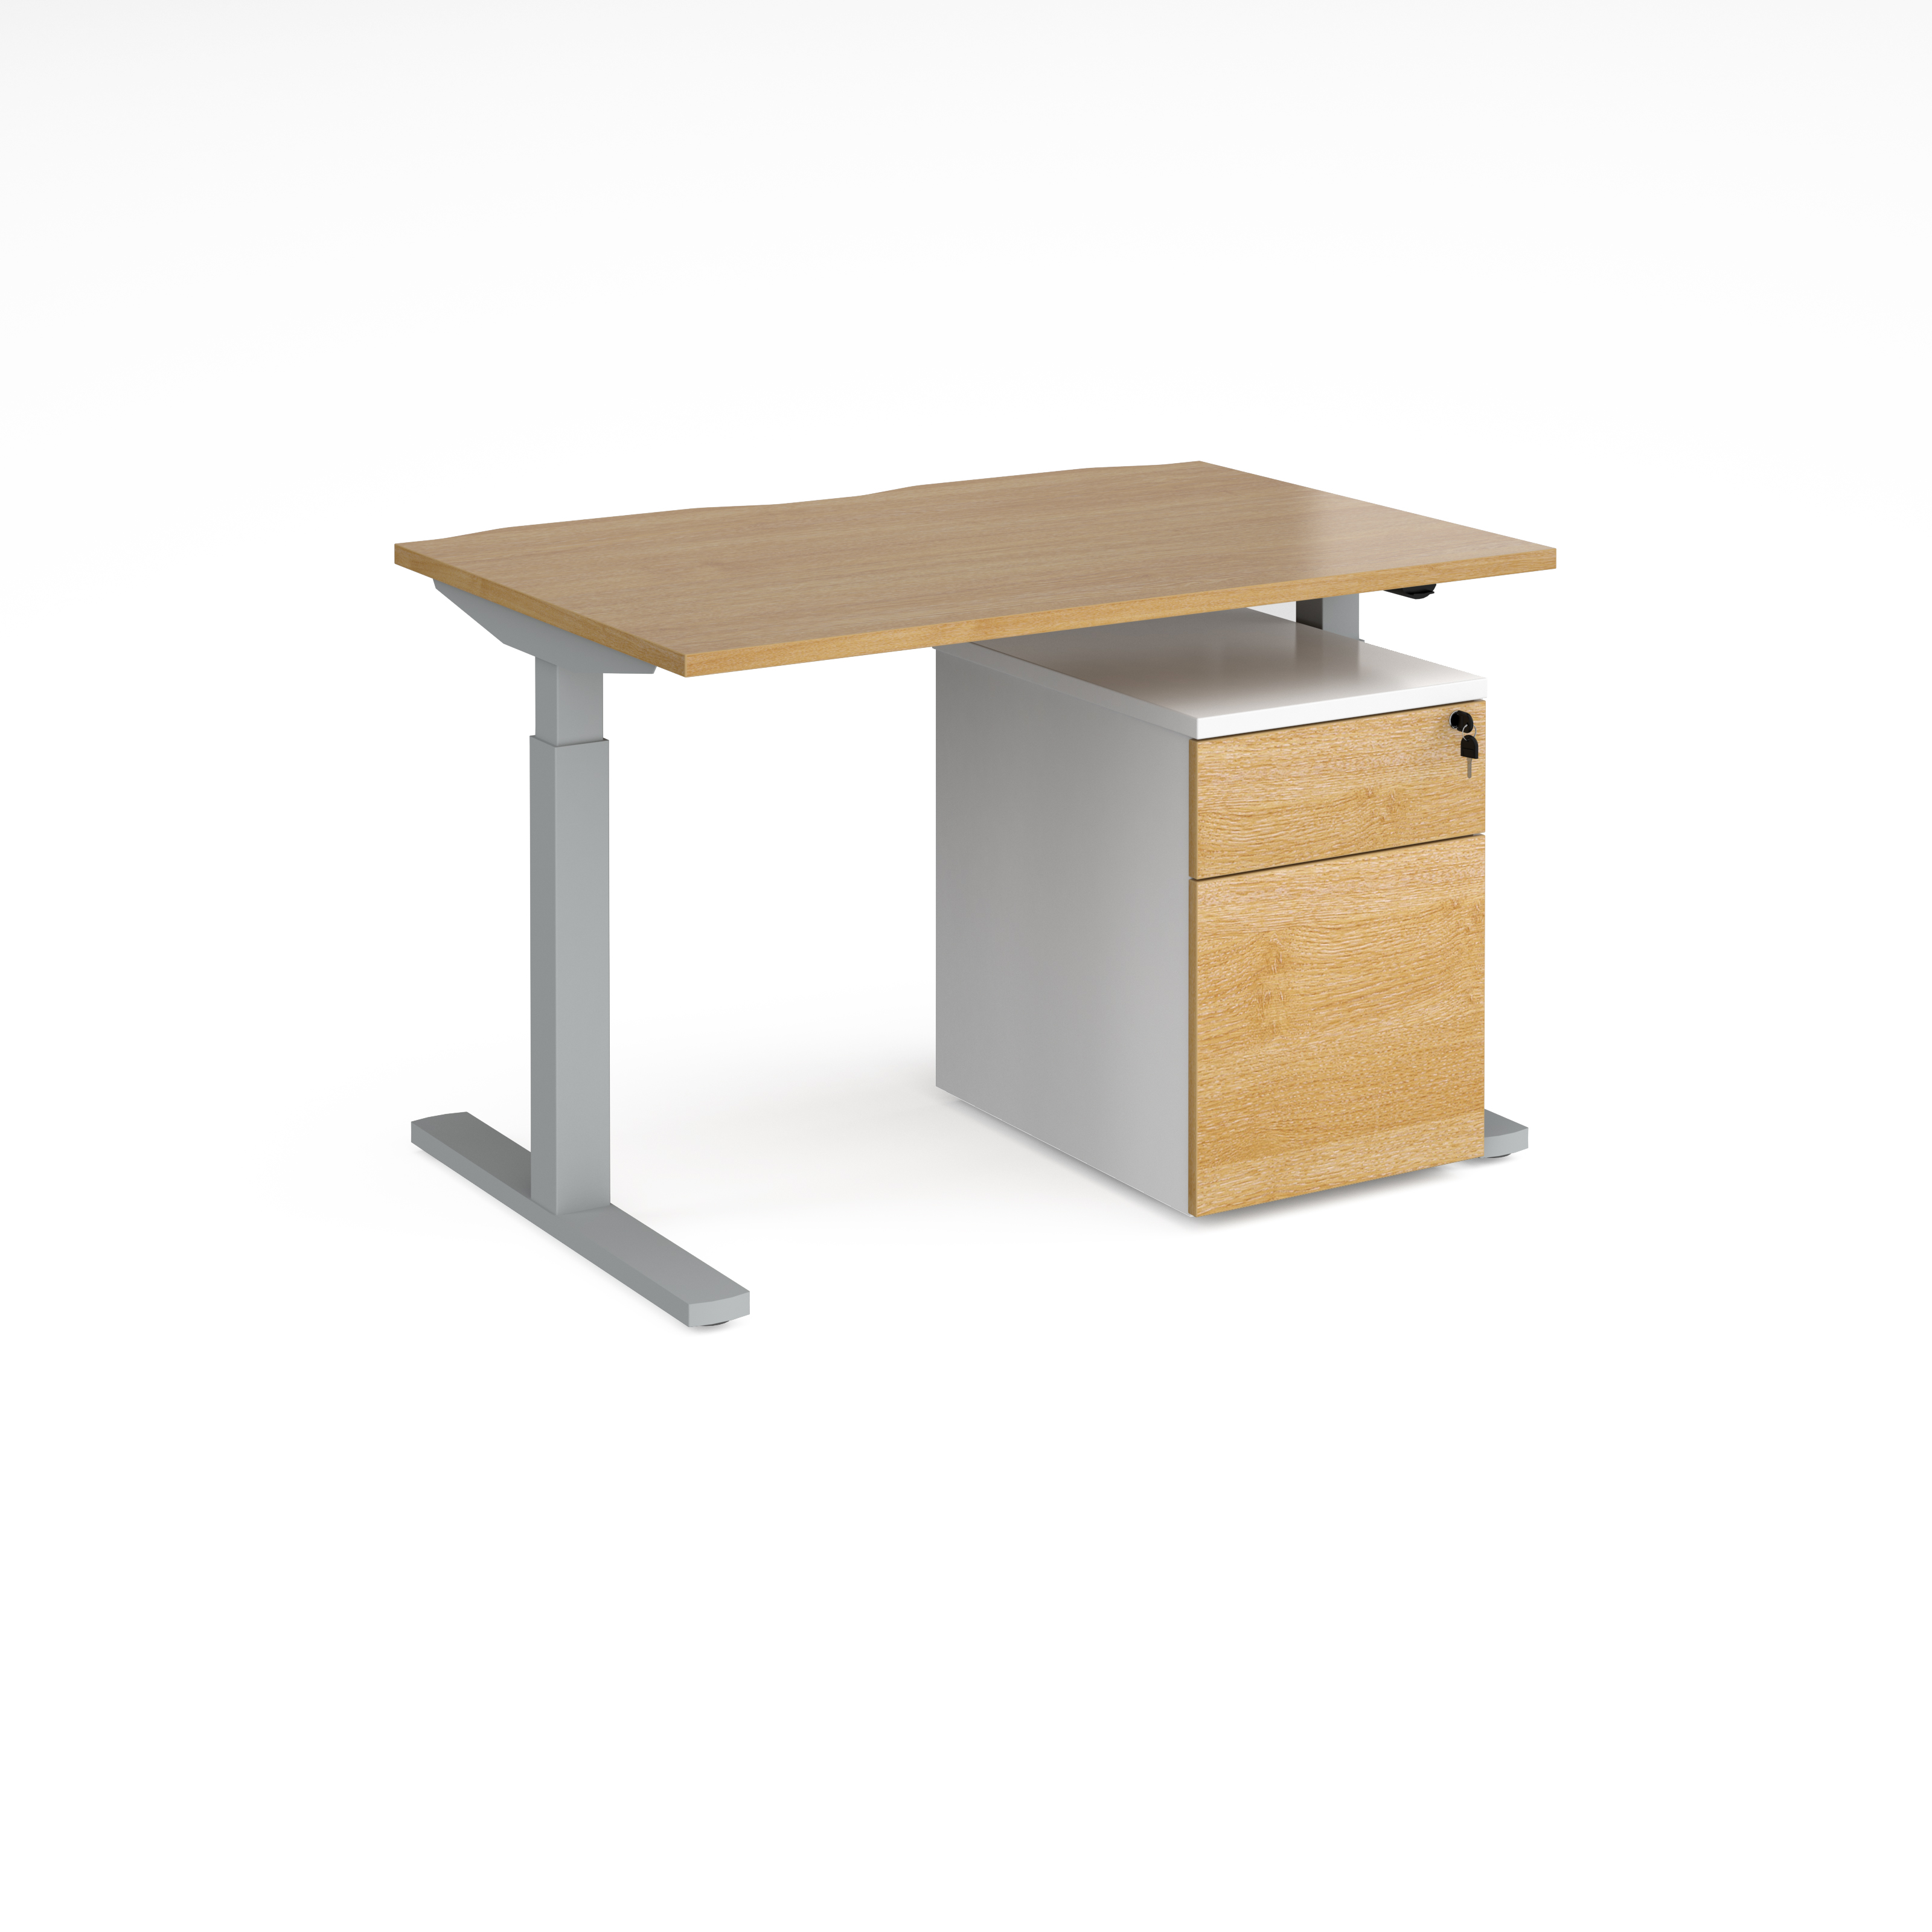 Sit Stand Desking Elev8 Mono straight sit-stand desk 1200mm x 800mm with silver frame and beech top with Duo mobile pedestal - white/beech